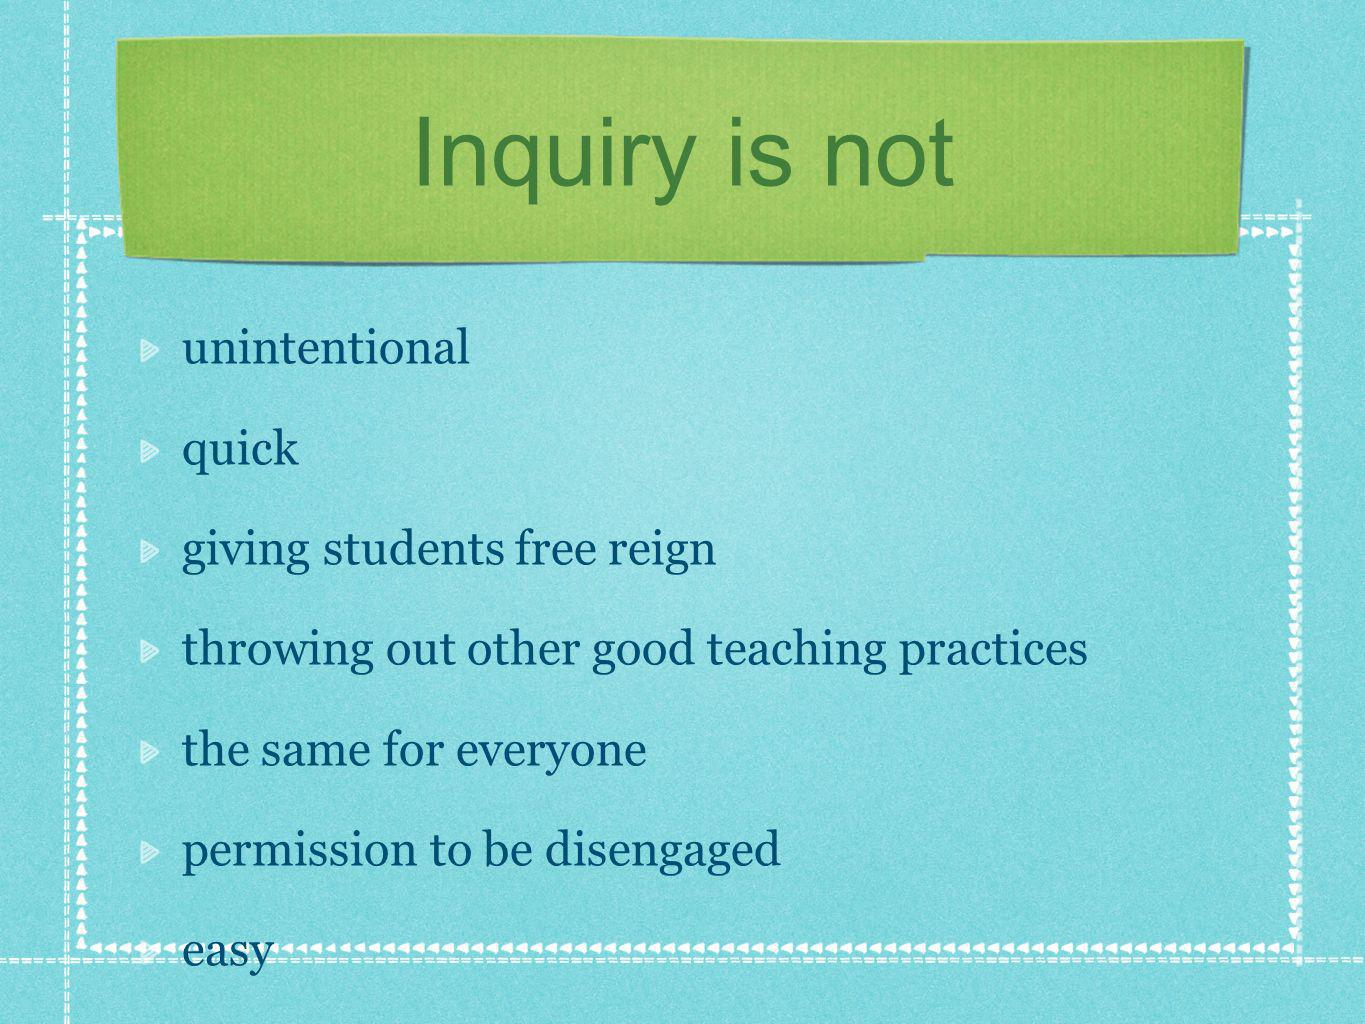 Inquiry is not unintentional quick giving students free reign throwing out other good teaching practices the same for everyone permission to be disengaged easy